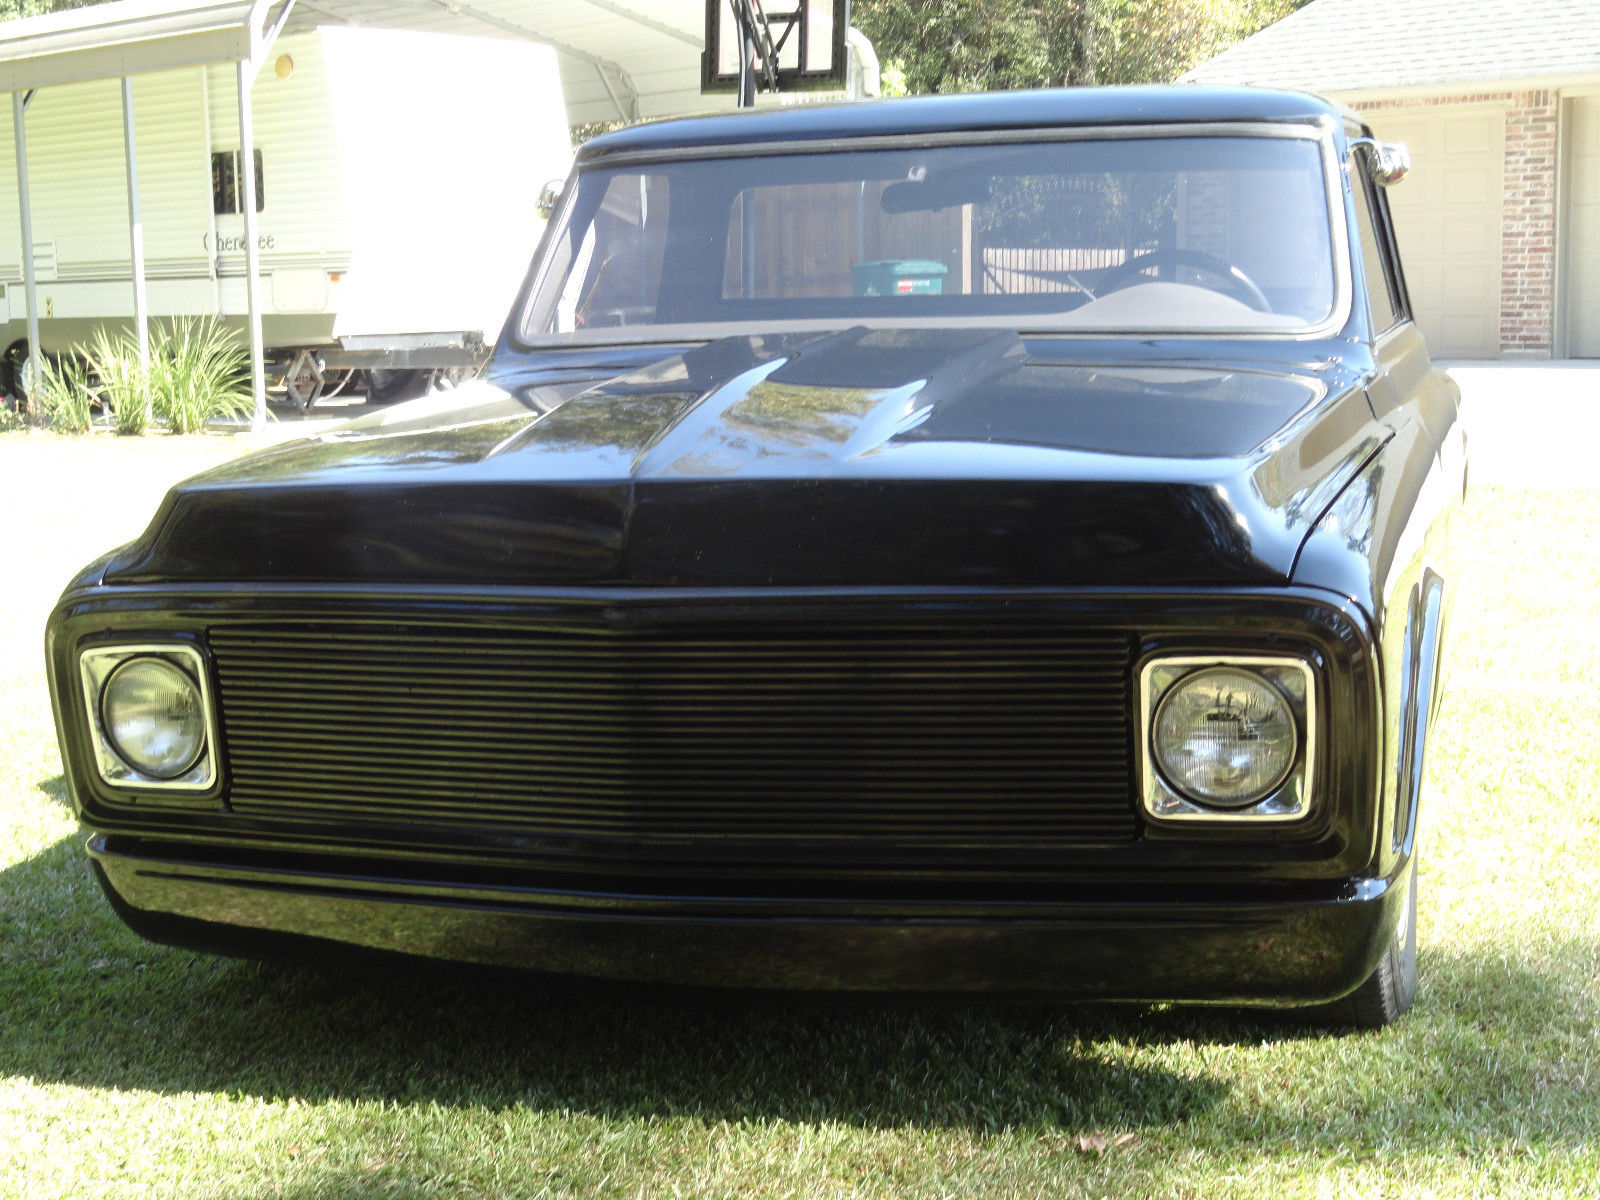 1970 c10 street rod fast loud stepside chevrolet truck hot. Black Bedroom Furniture Sets. Home Design Ideas